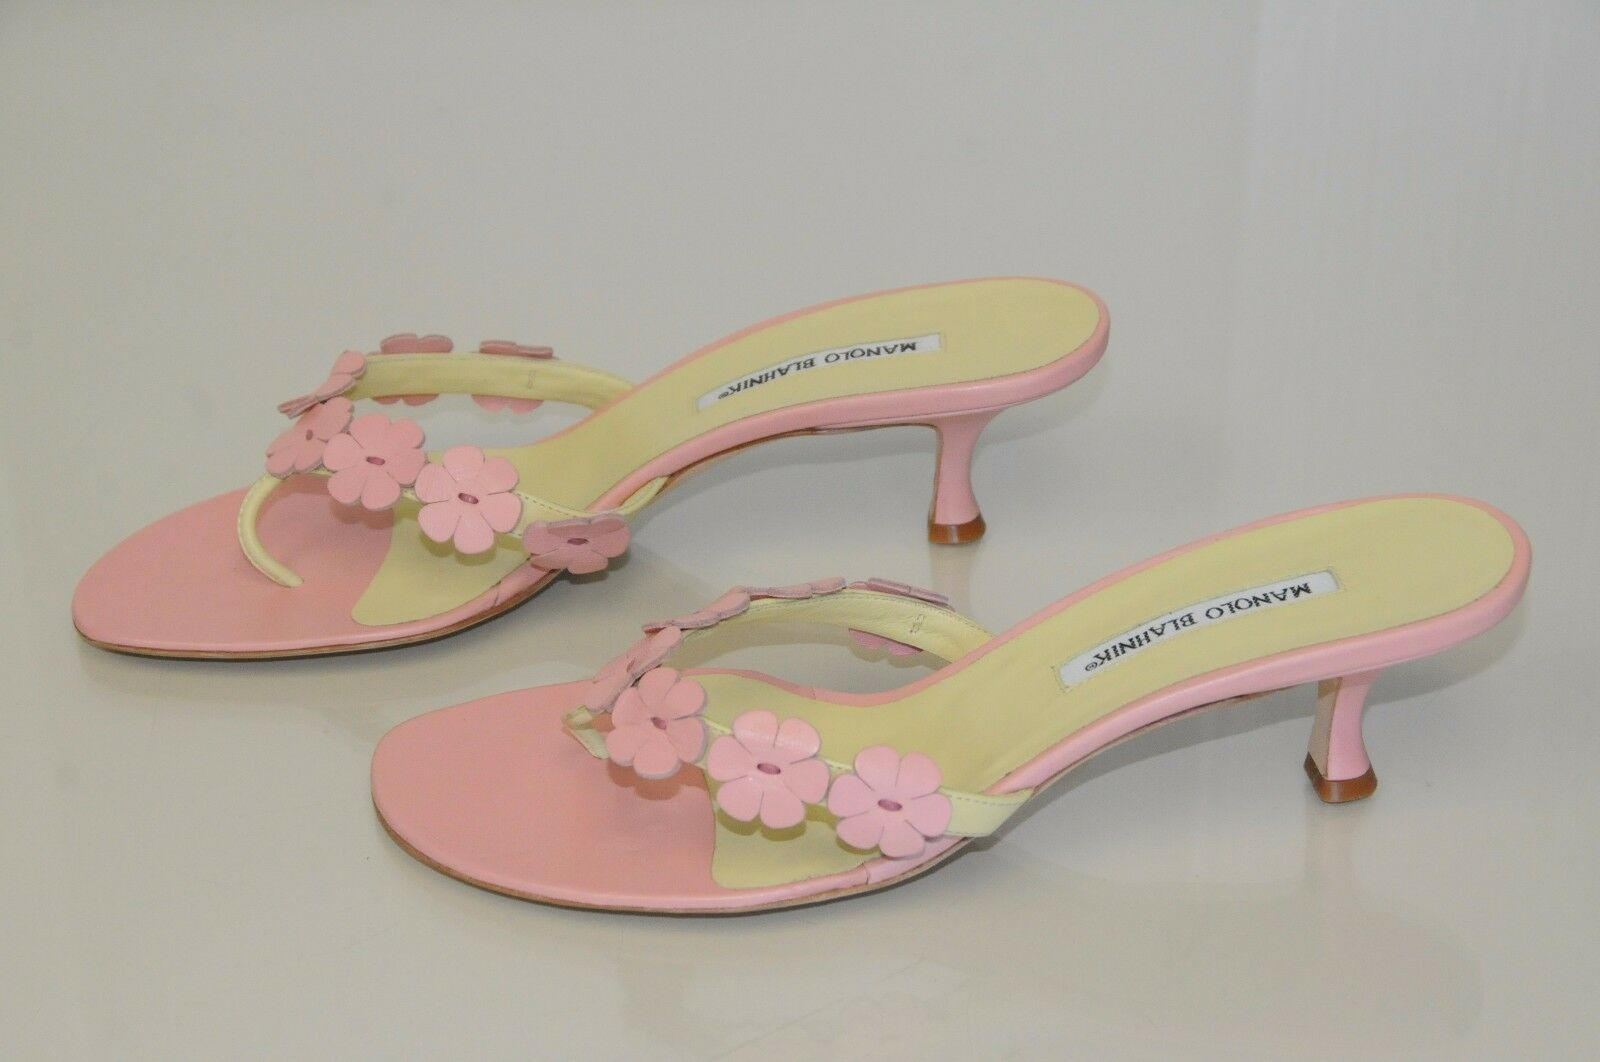 NEW MANOLO BLAHNIK Petta Thong Floral Pink Kitten Heel Sandals shoes 40.5